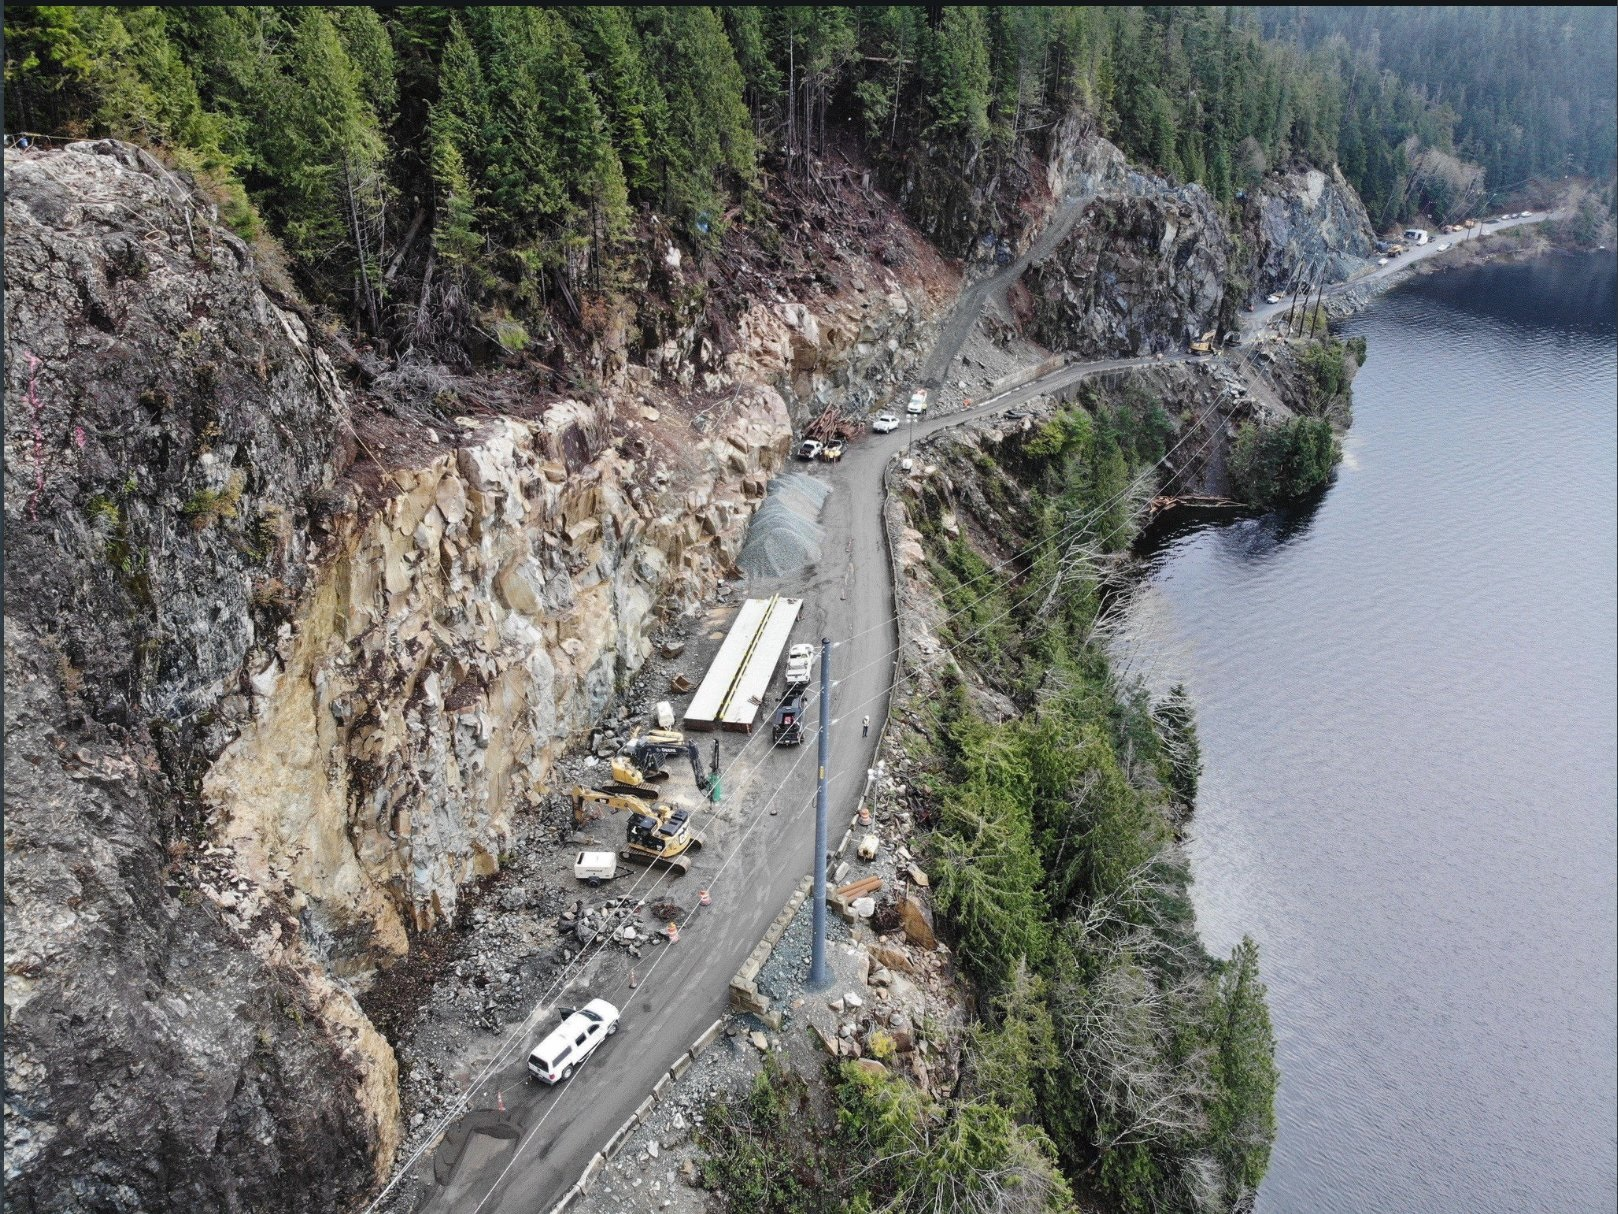 Deliveries of food, suppplies to Tofino and Ucluelet resume as highway reopens